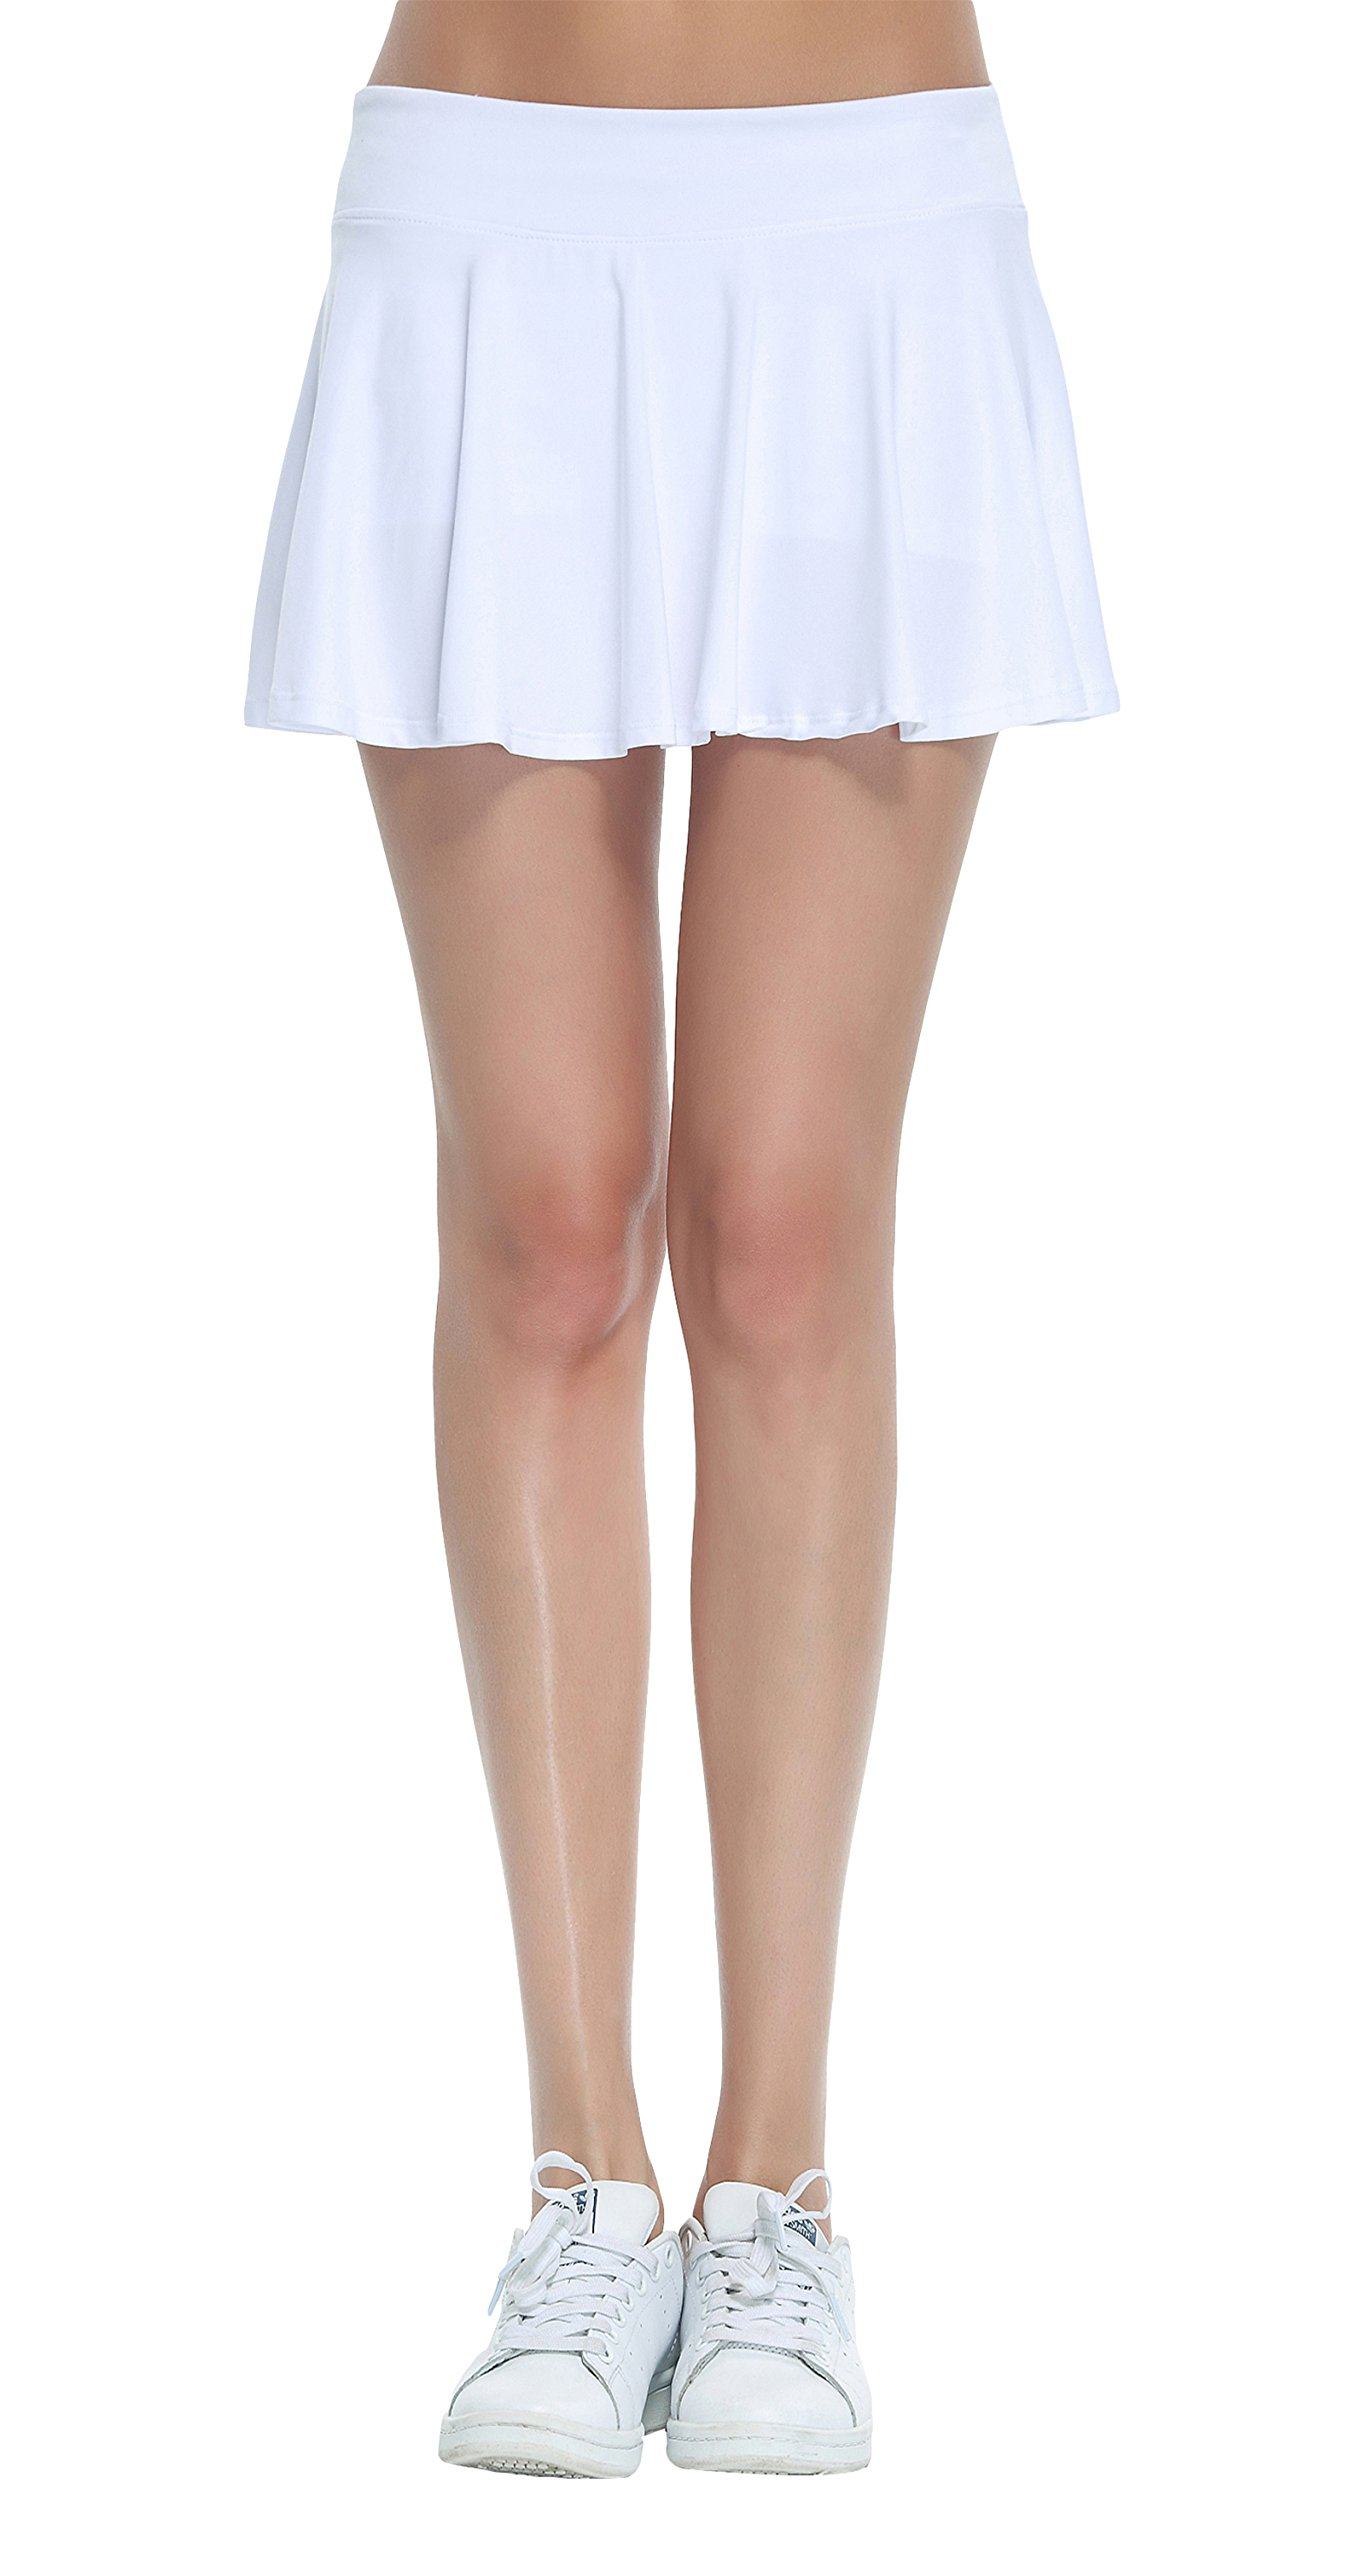 Women's Fitness Pleated Skirts Active Running Tennis Golf Lightweight Skorts With Built-In Shorts size Medium (White)